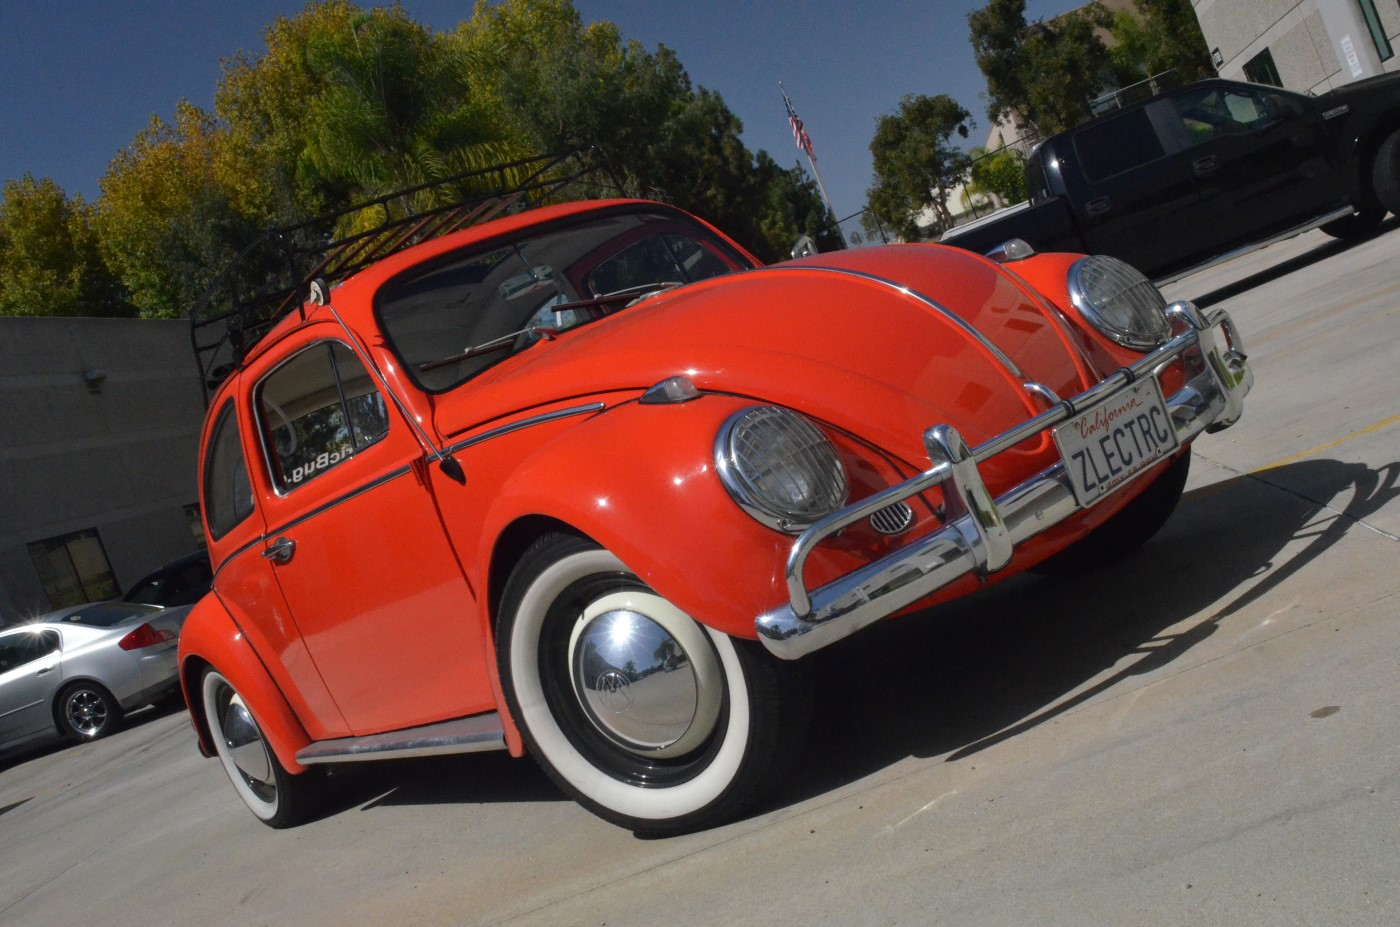 2019 Vw Beetle >> Zelectric Motors' 1963 Volkswagen Beetle Electric Car Driven